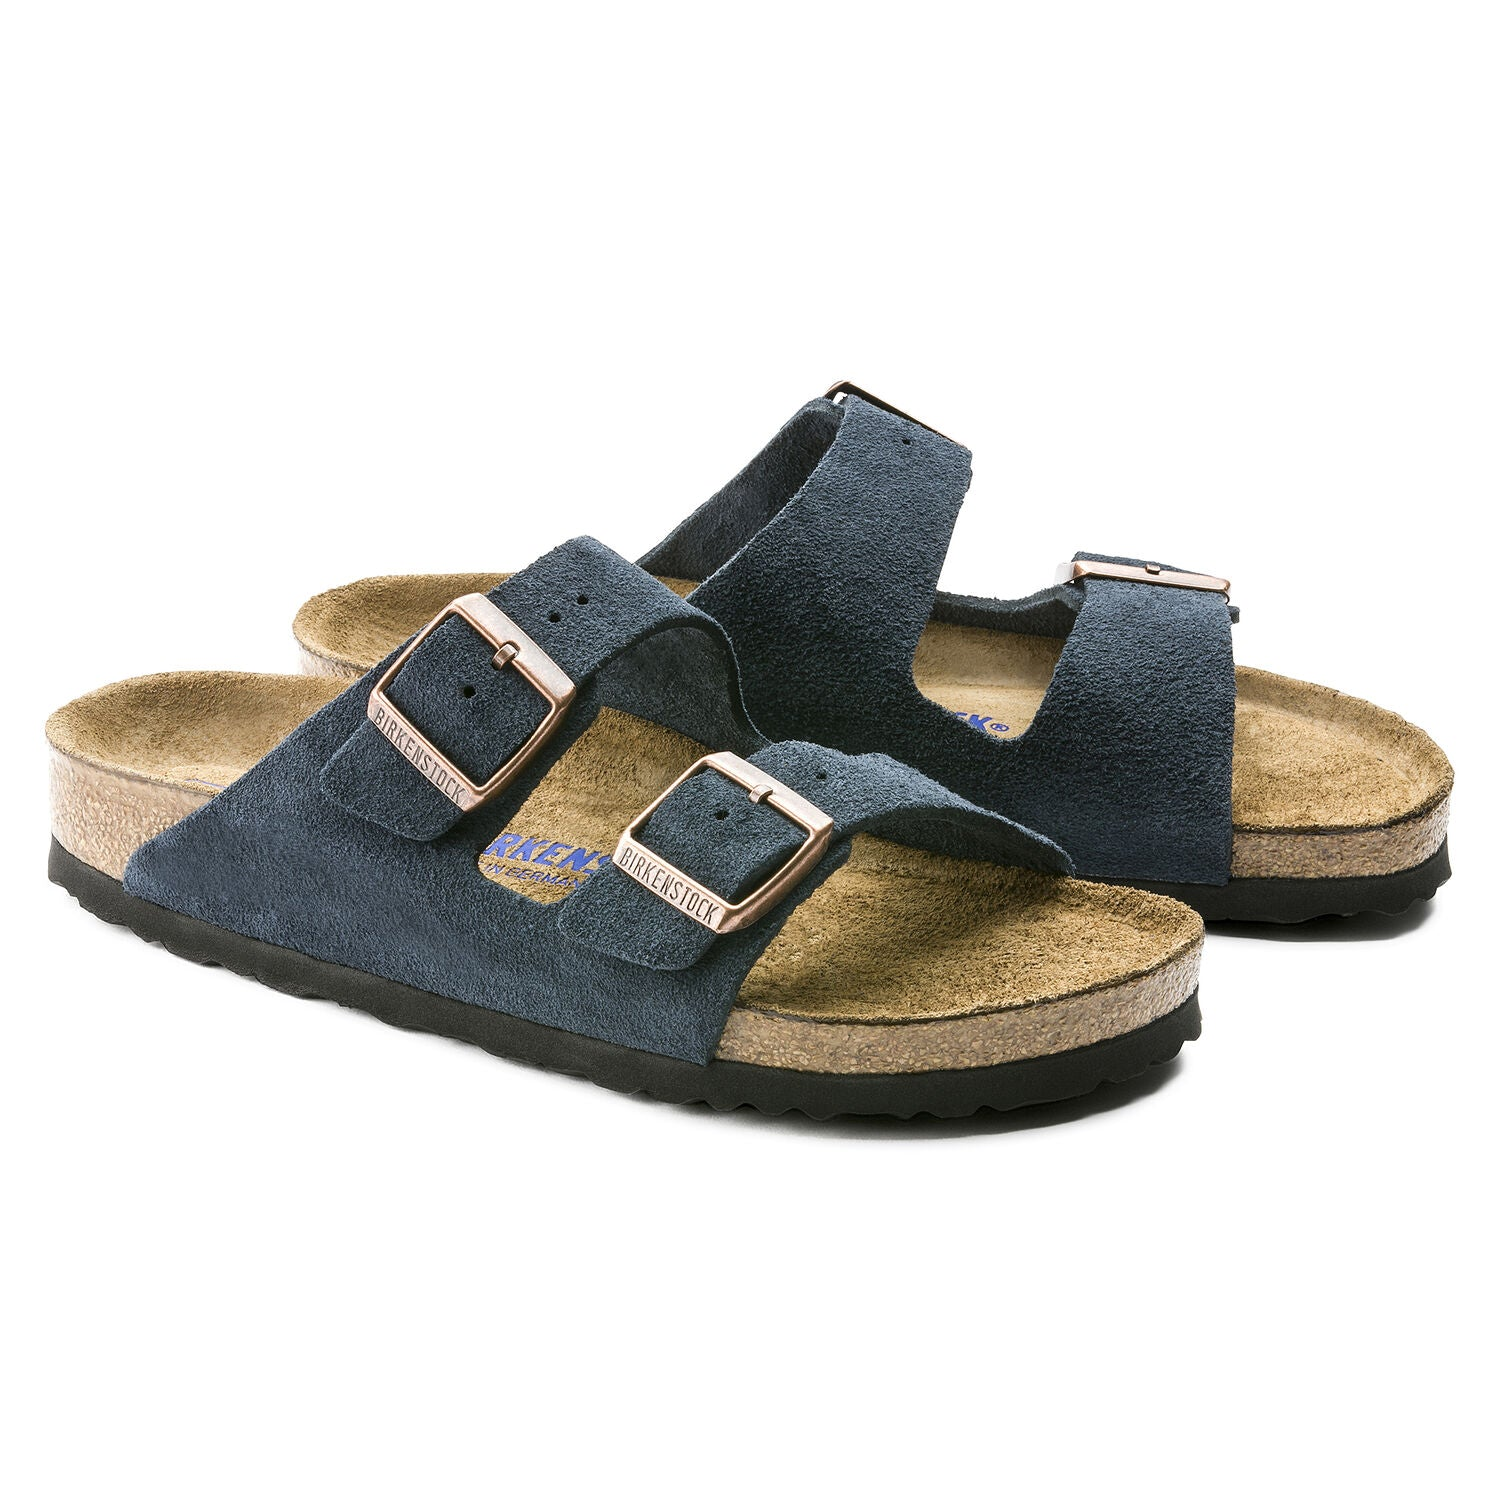 BIRKENSTOCK BIRKENSTOCK ARIZONA NAVY SUEDE LEATHER REGULAR SOFT FOOTBED getset-footwear.myshopify.com